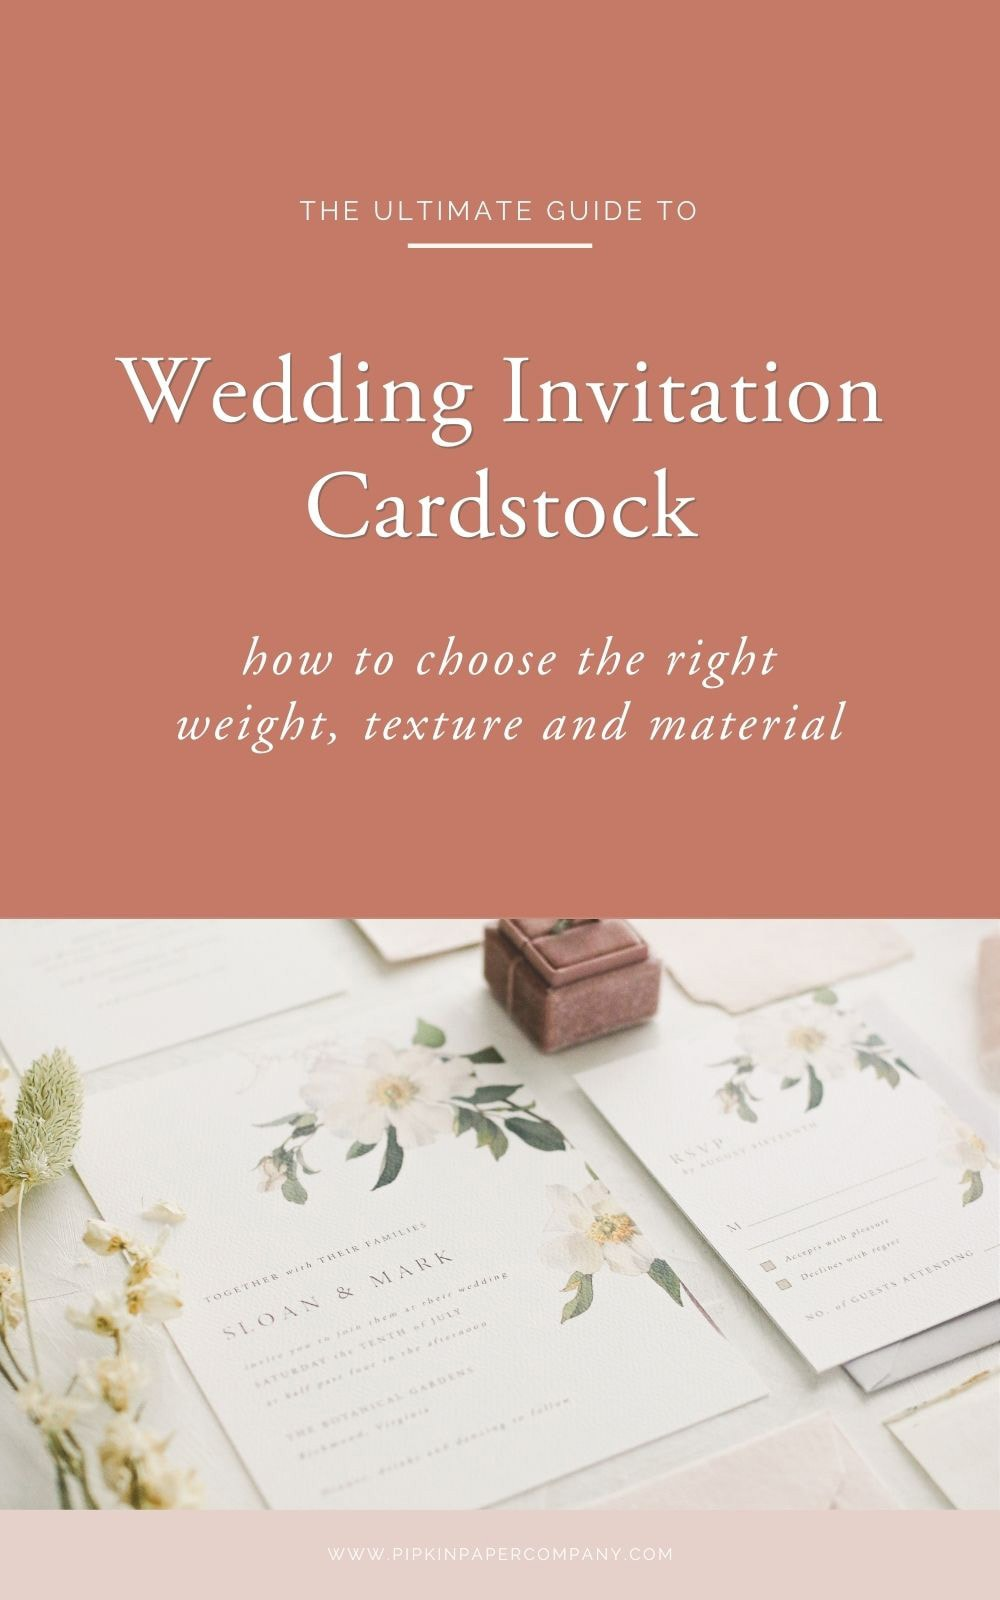 Cardstock 5: How to Choose Paper for Wedding Invitations